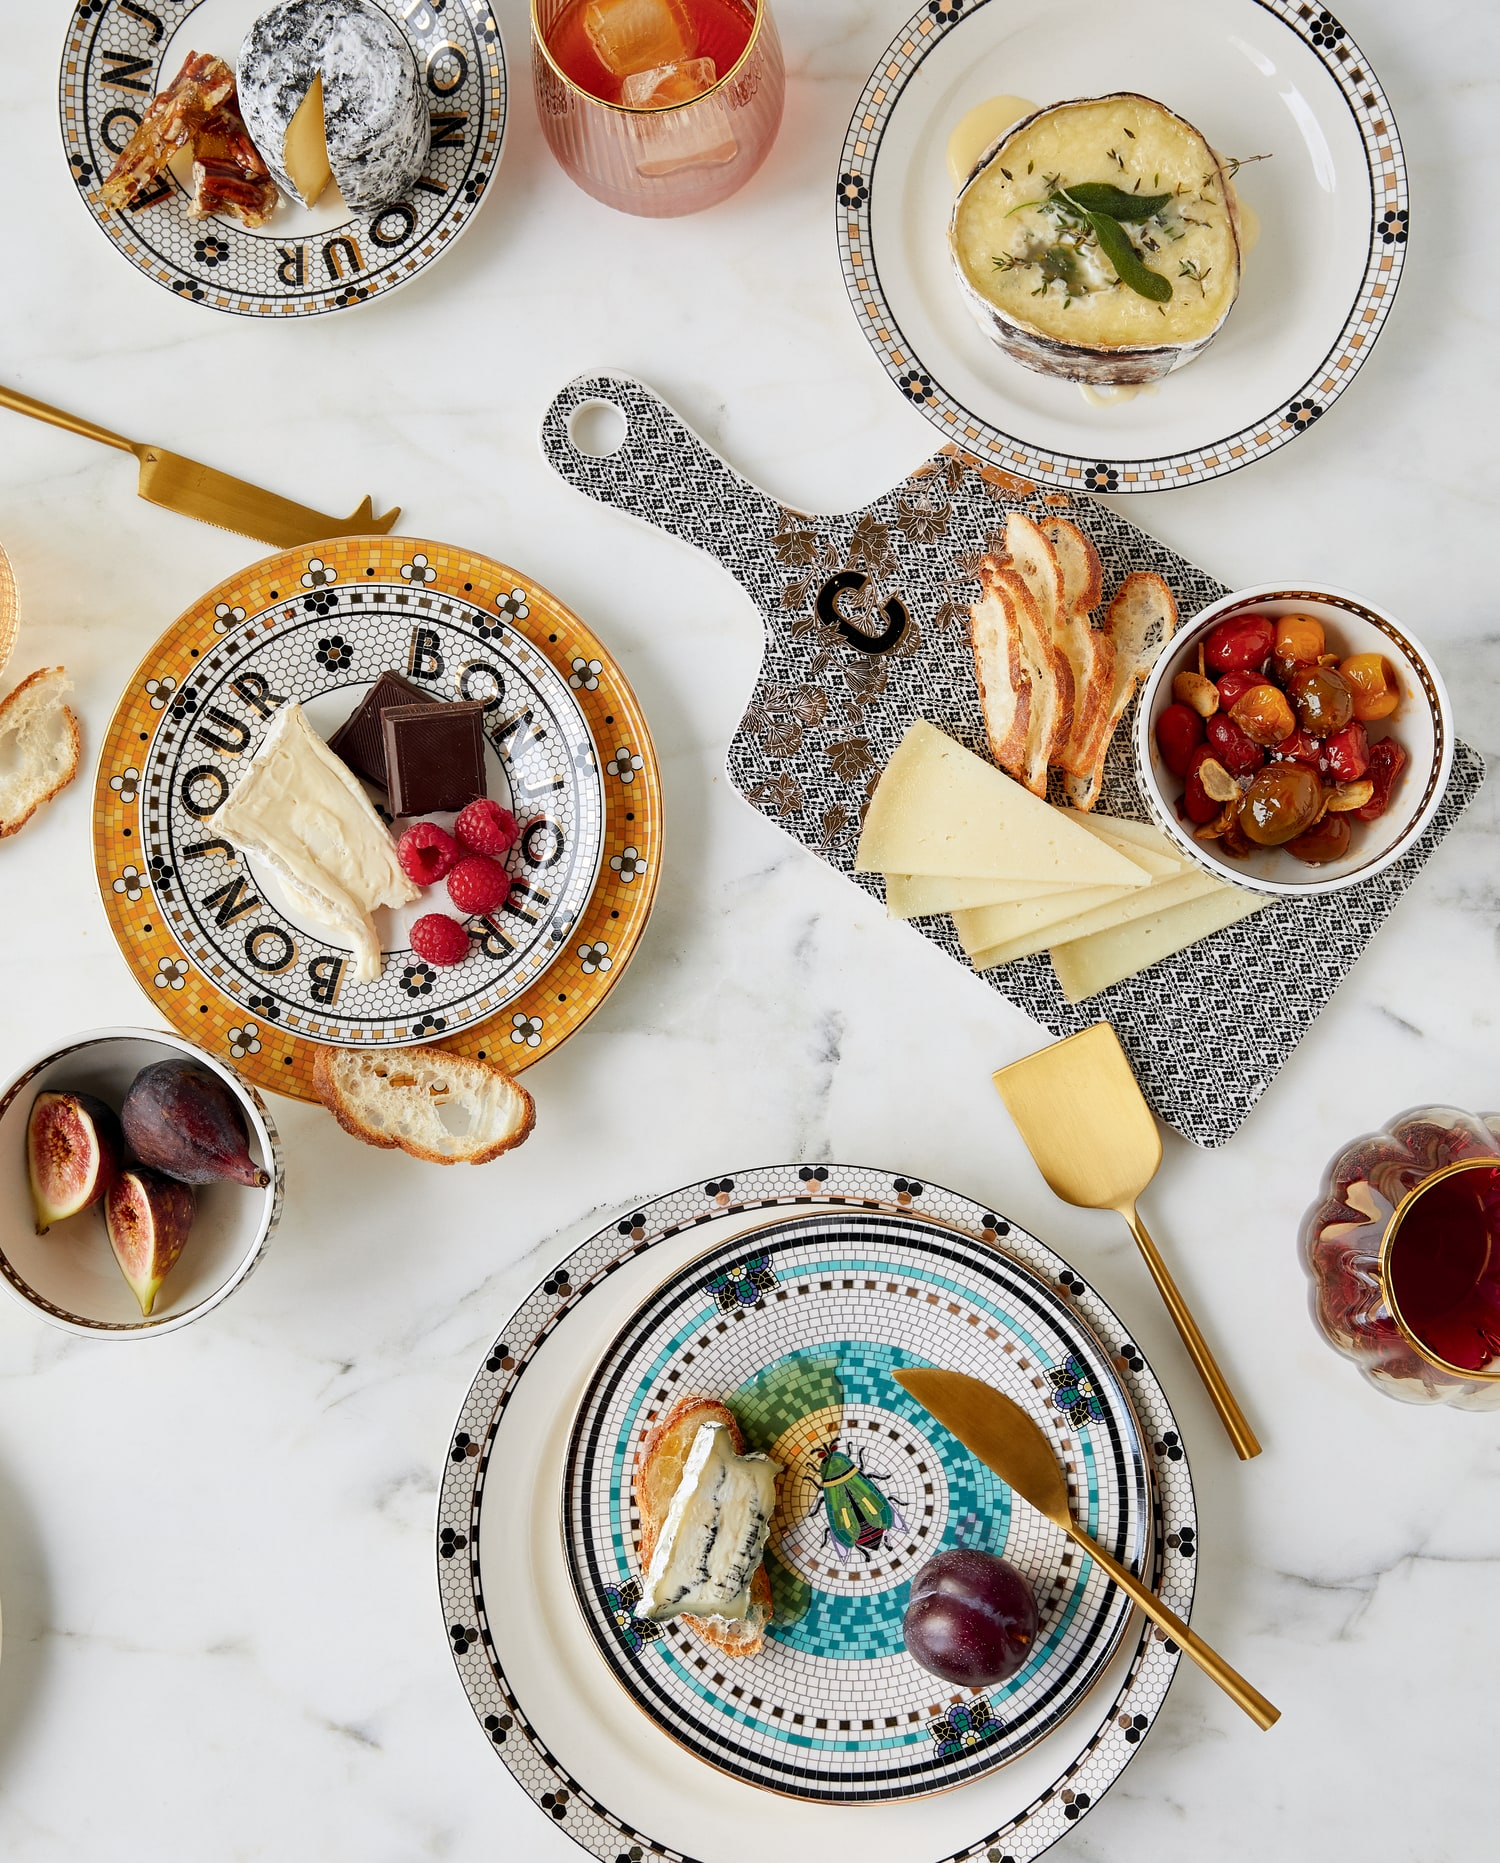 Anthropologie's Fall Home Collection Is Here, and It Feels Like a Big, Warm Hug